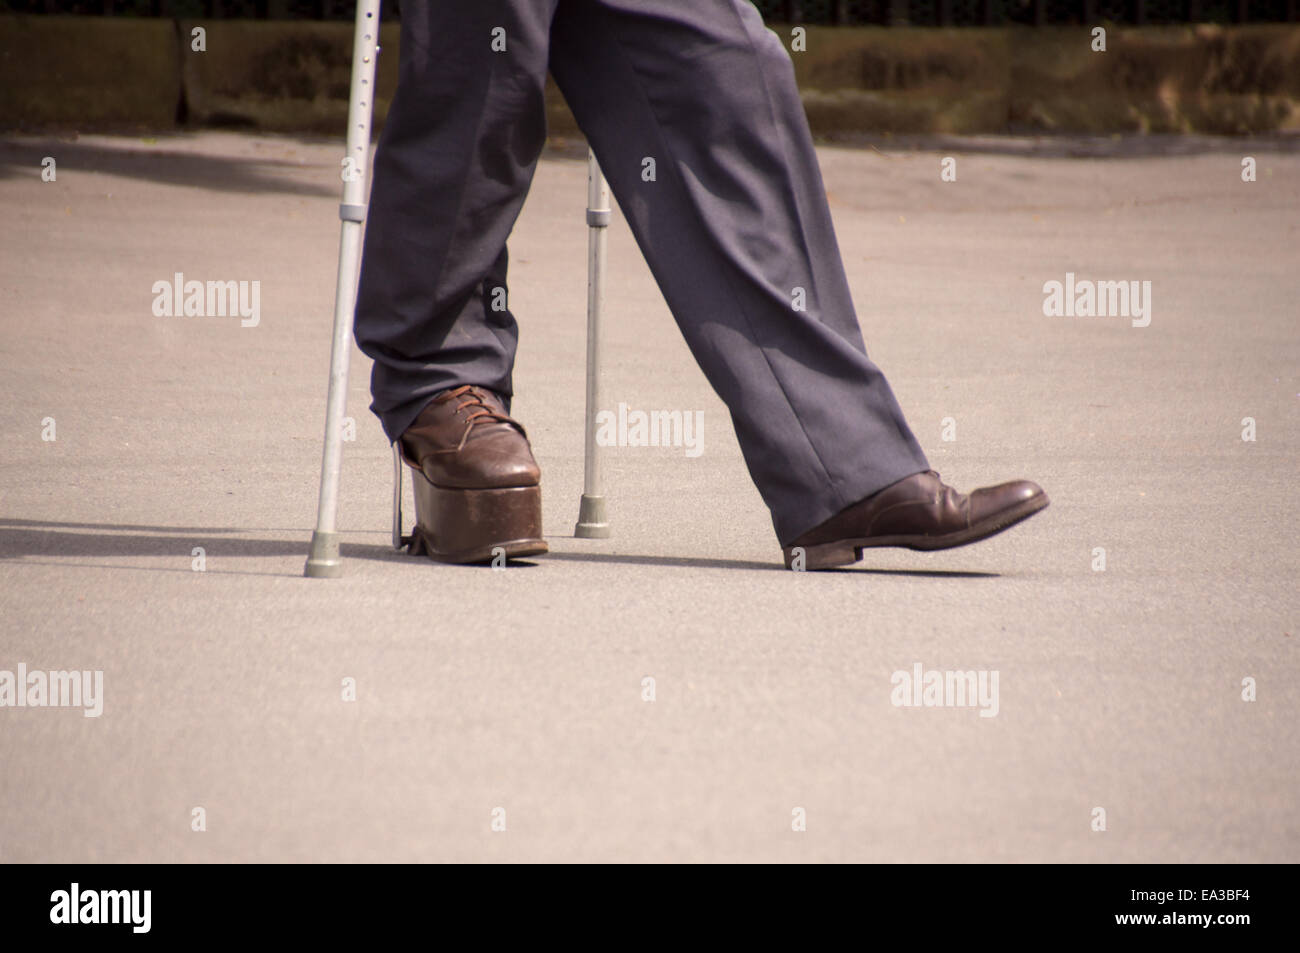 Close up of a person with a disability. - Stock Image